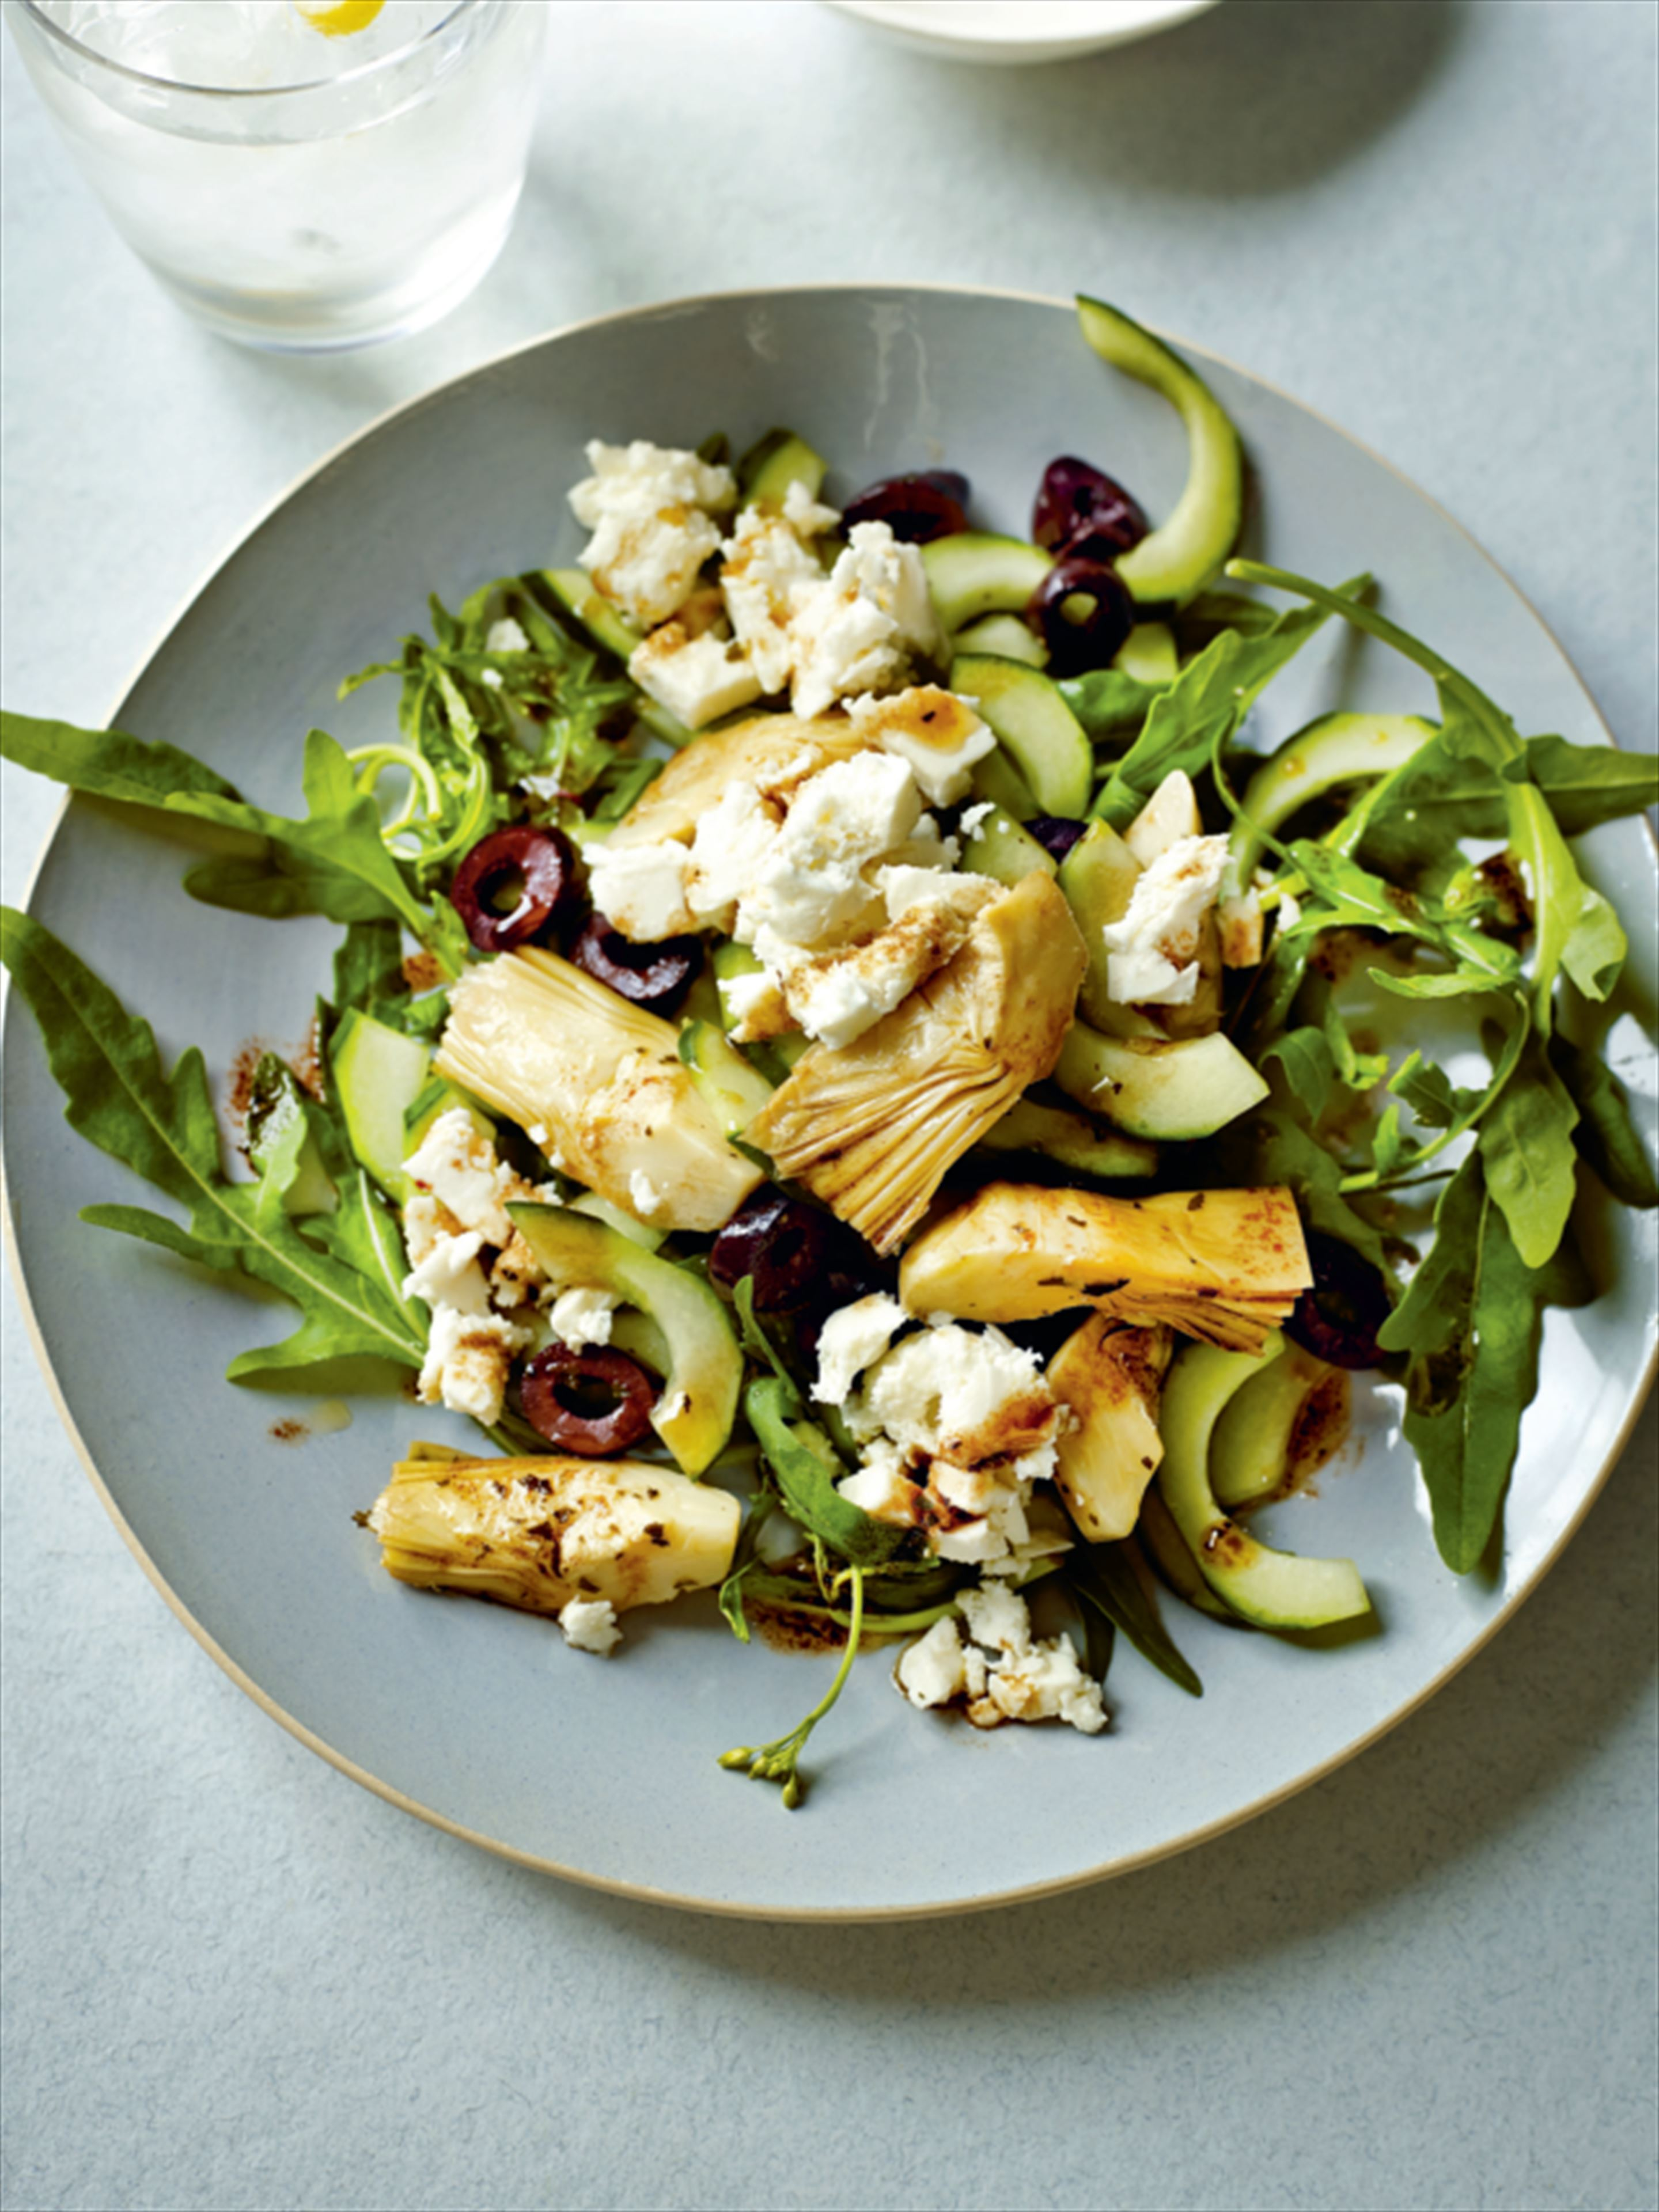 Greek salad with rocket and artichokes